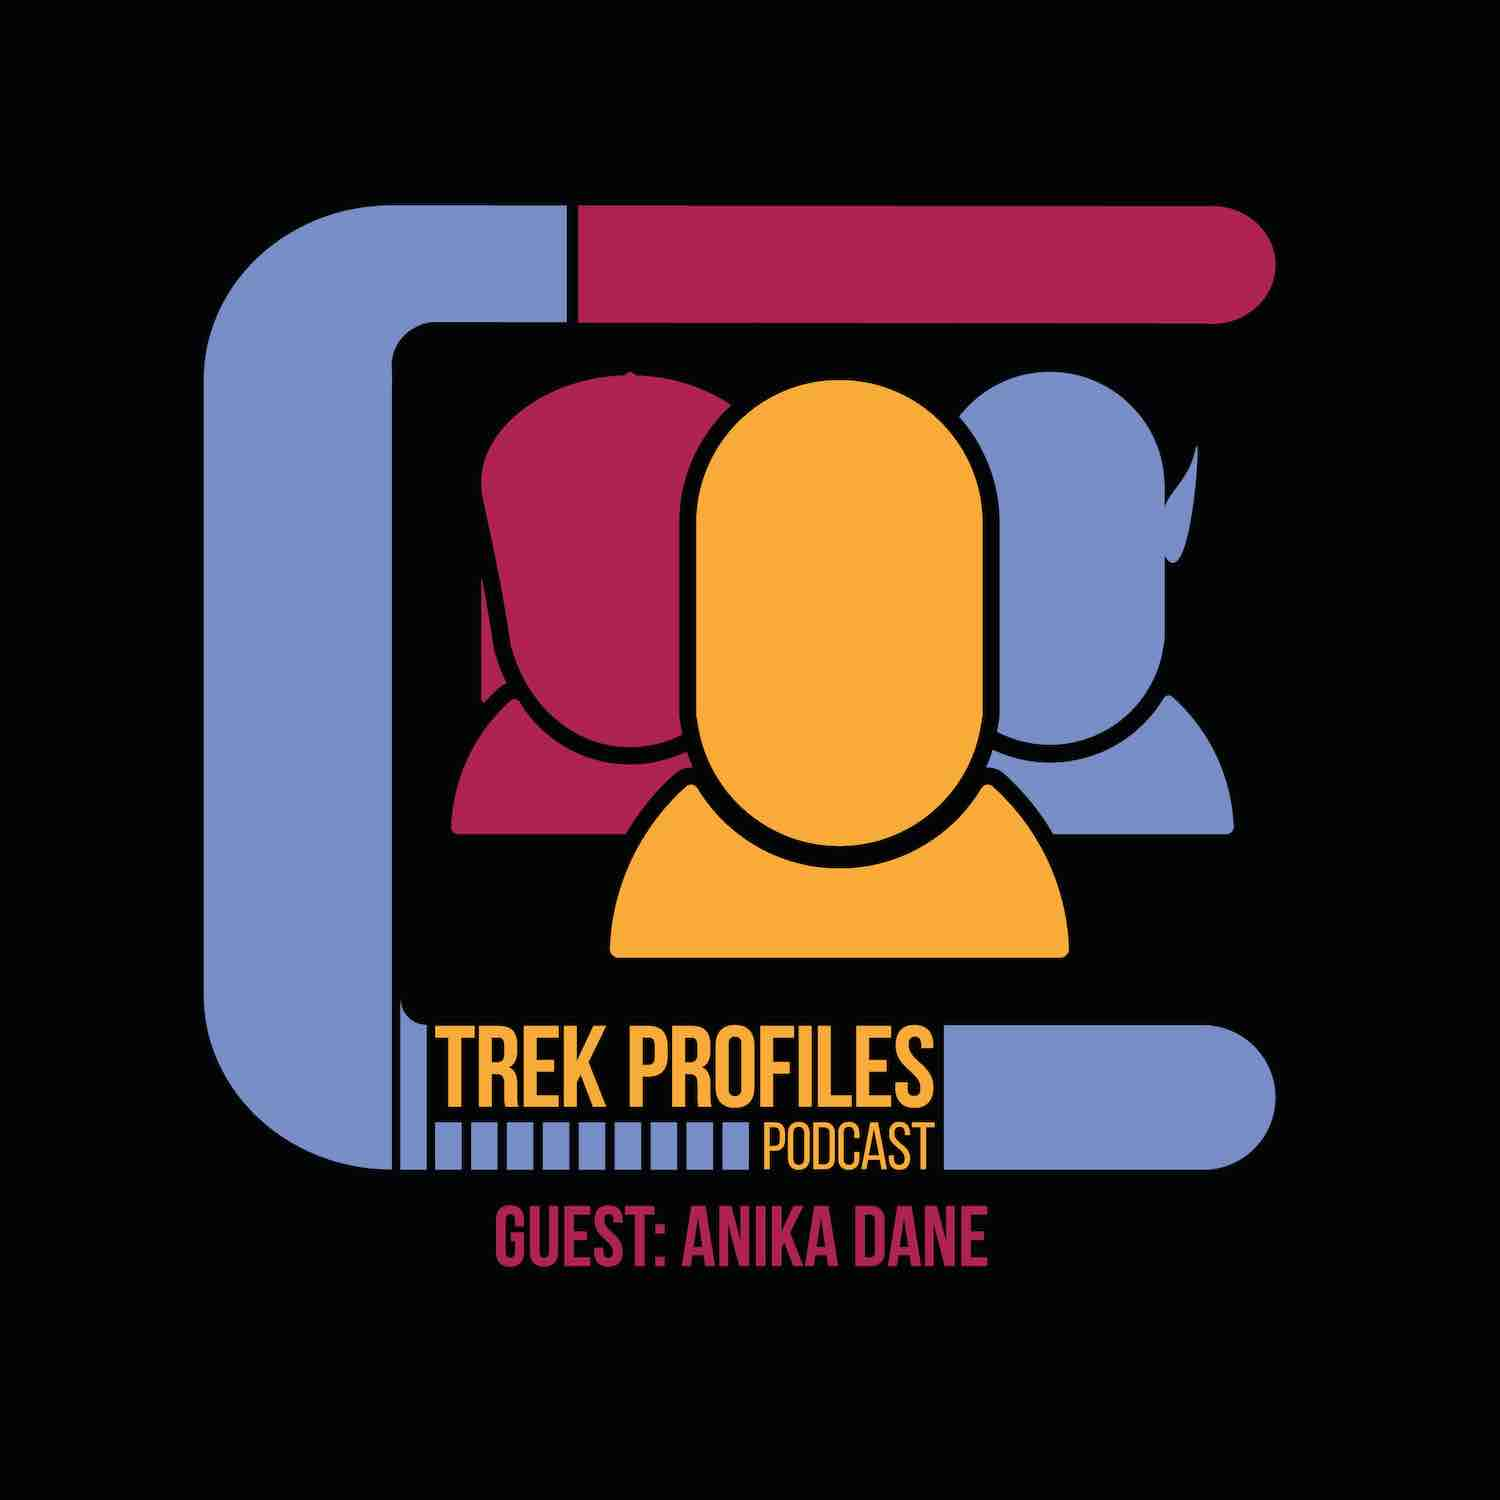 TrekProfiles #31: Anika Dane